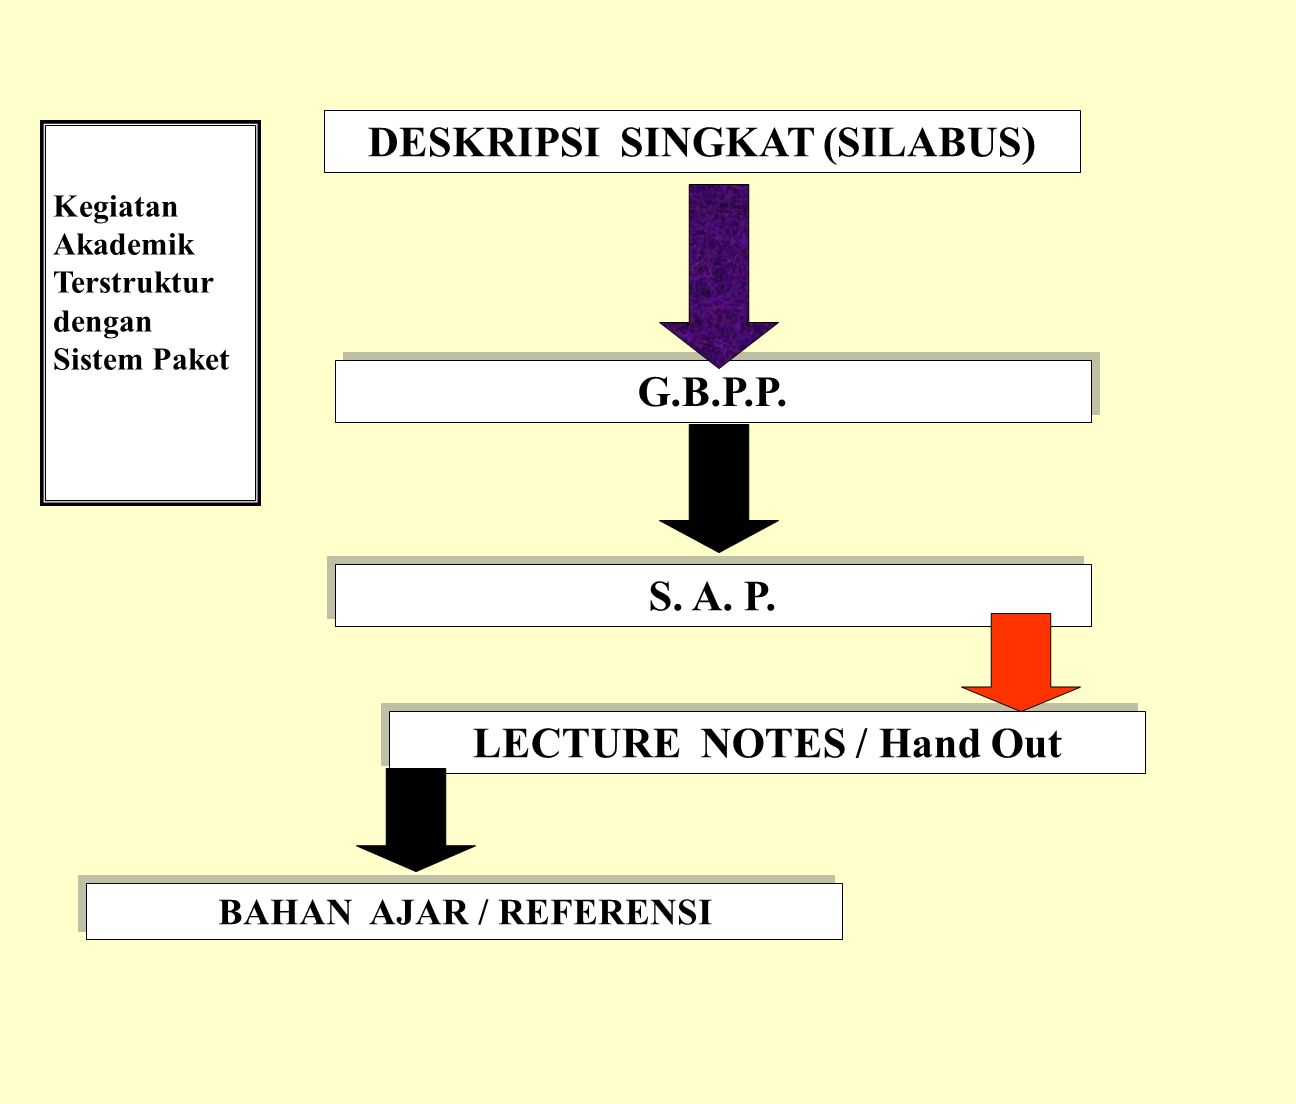 DESKRIPSI SINGKAT (SILABUS) LECTURE NOTES / Hand Out